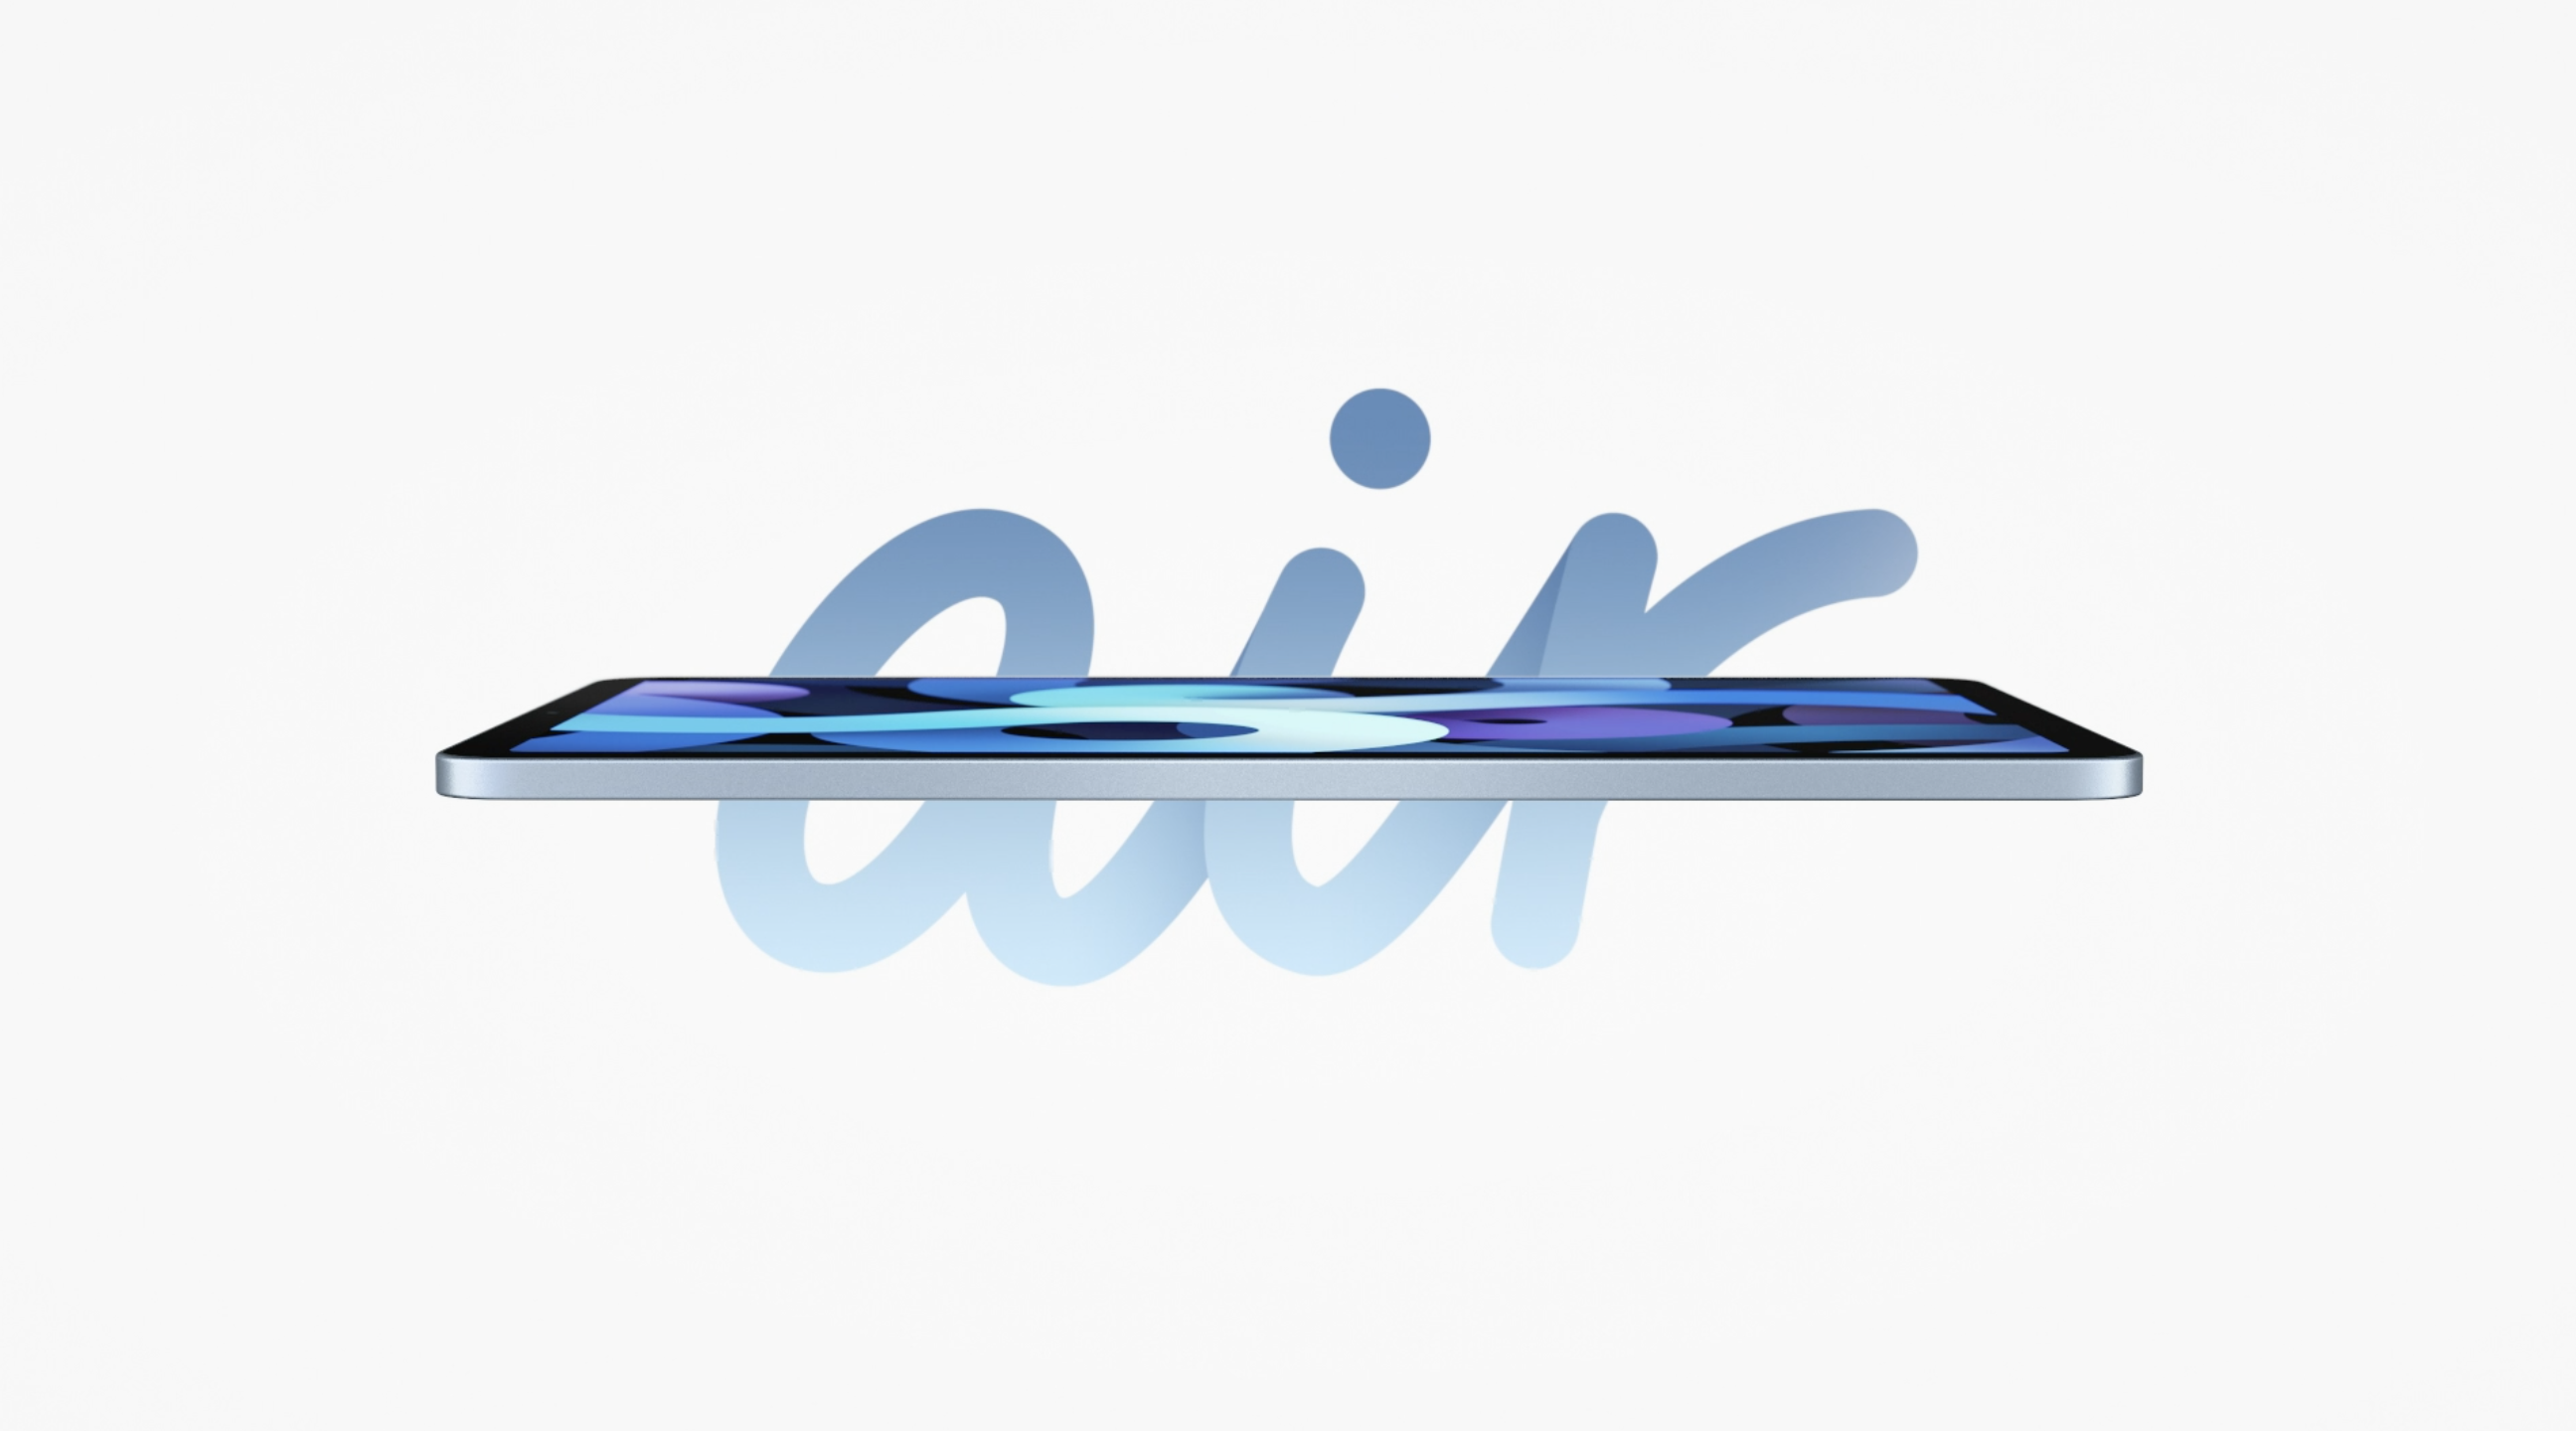 Hands-on videos showcase colorful new iPad Air design, Touch ID in the top button, more - 9to5Mac